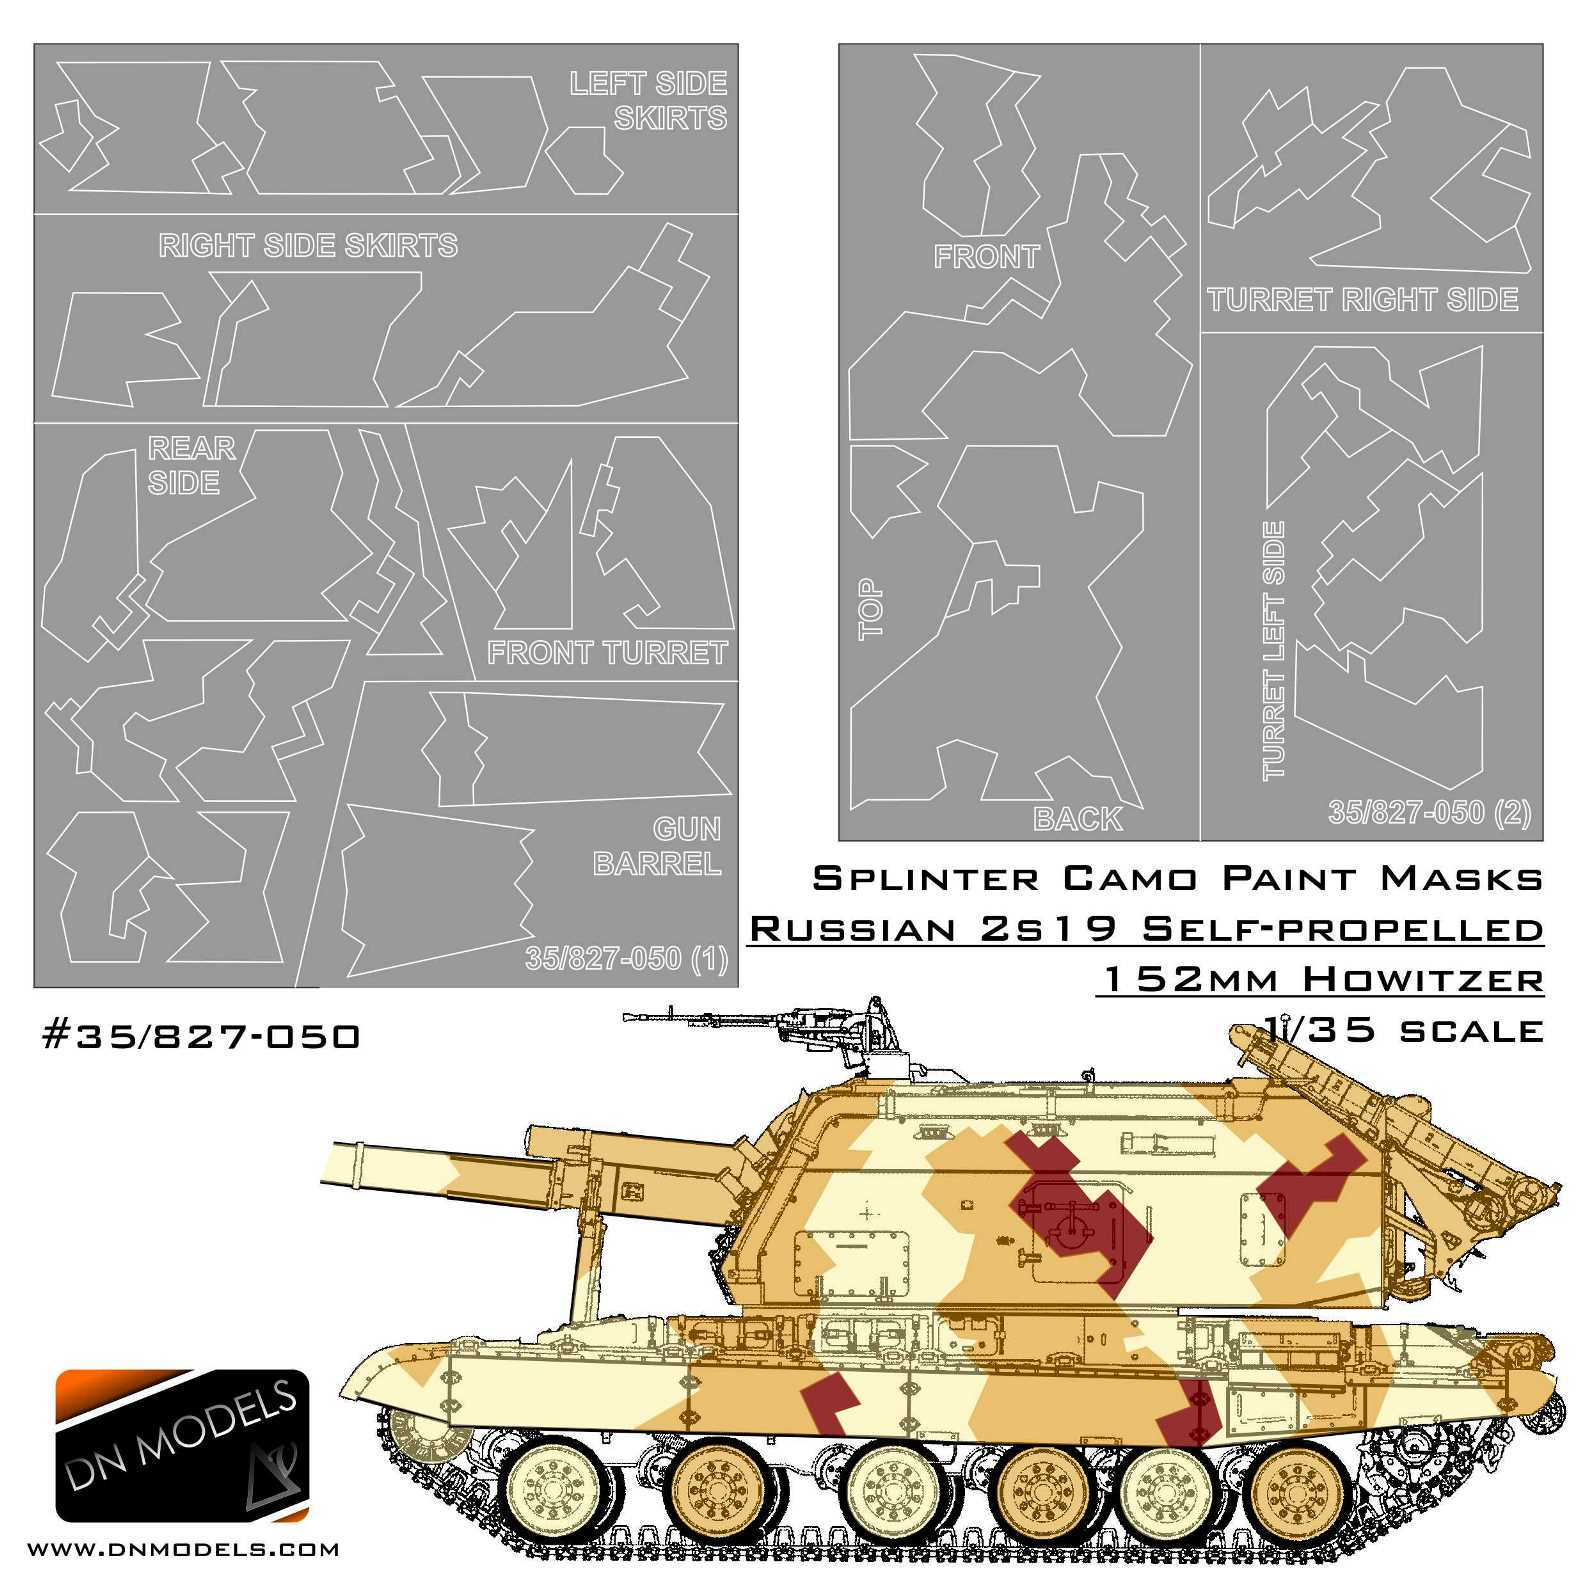 Cover 2s19 splinter camo (site)2